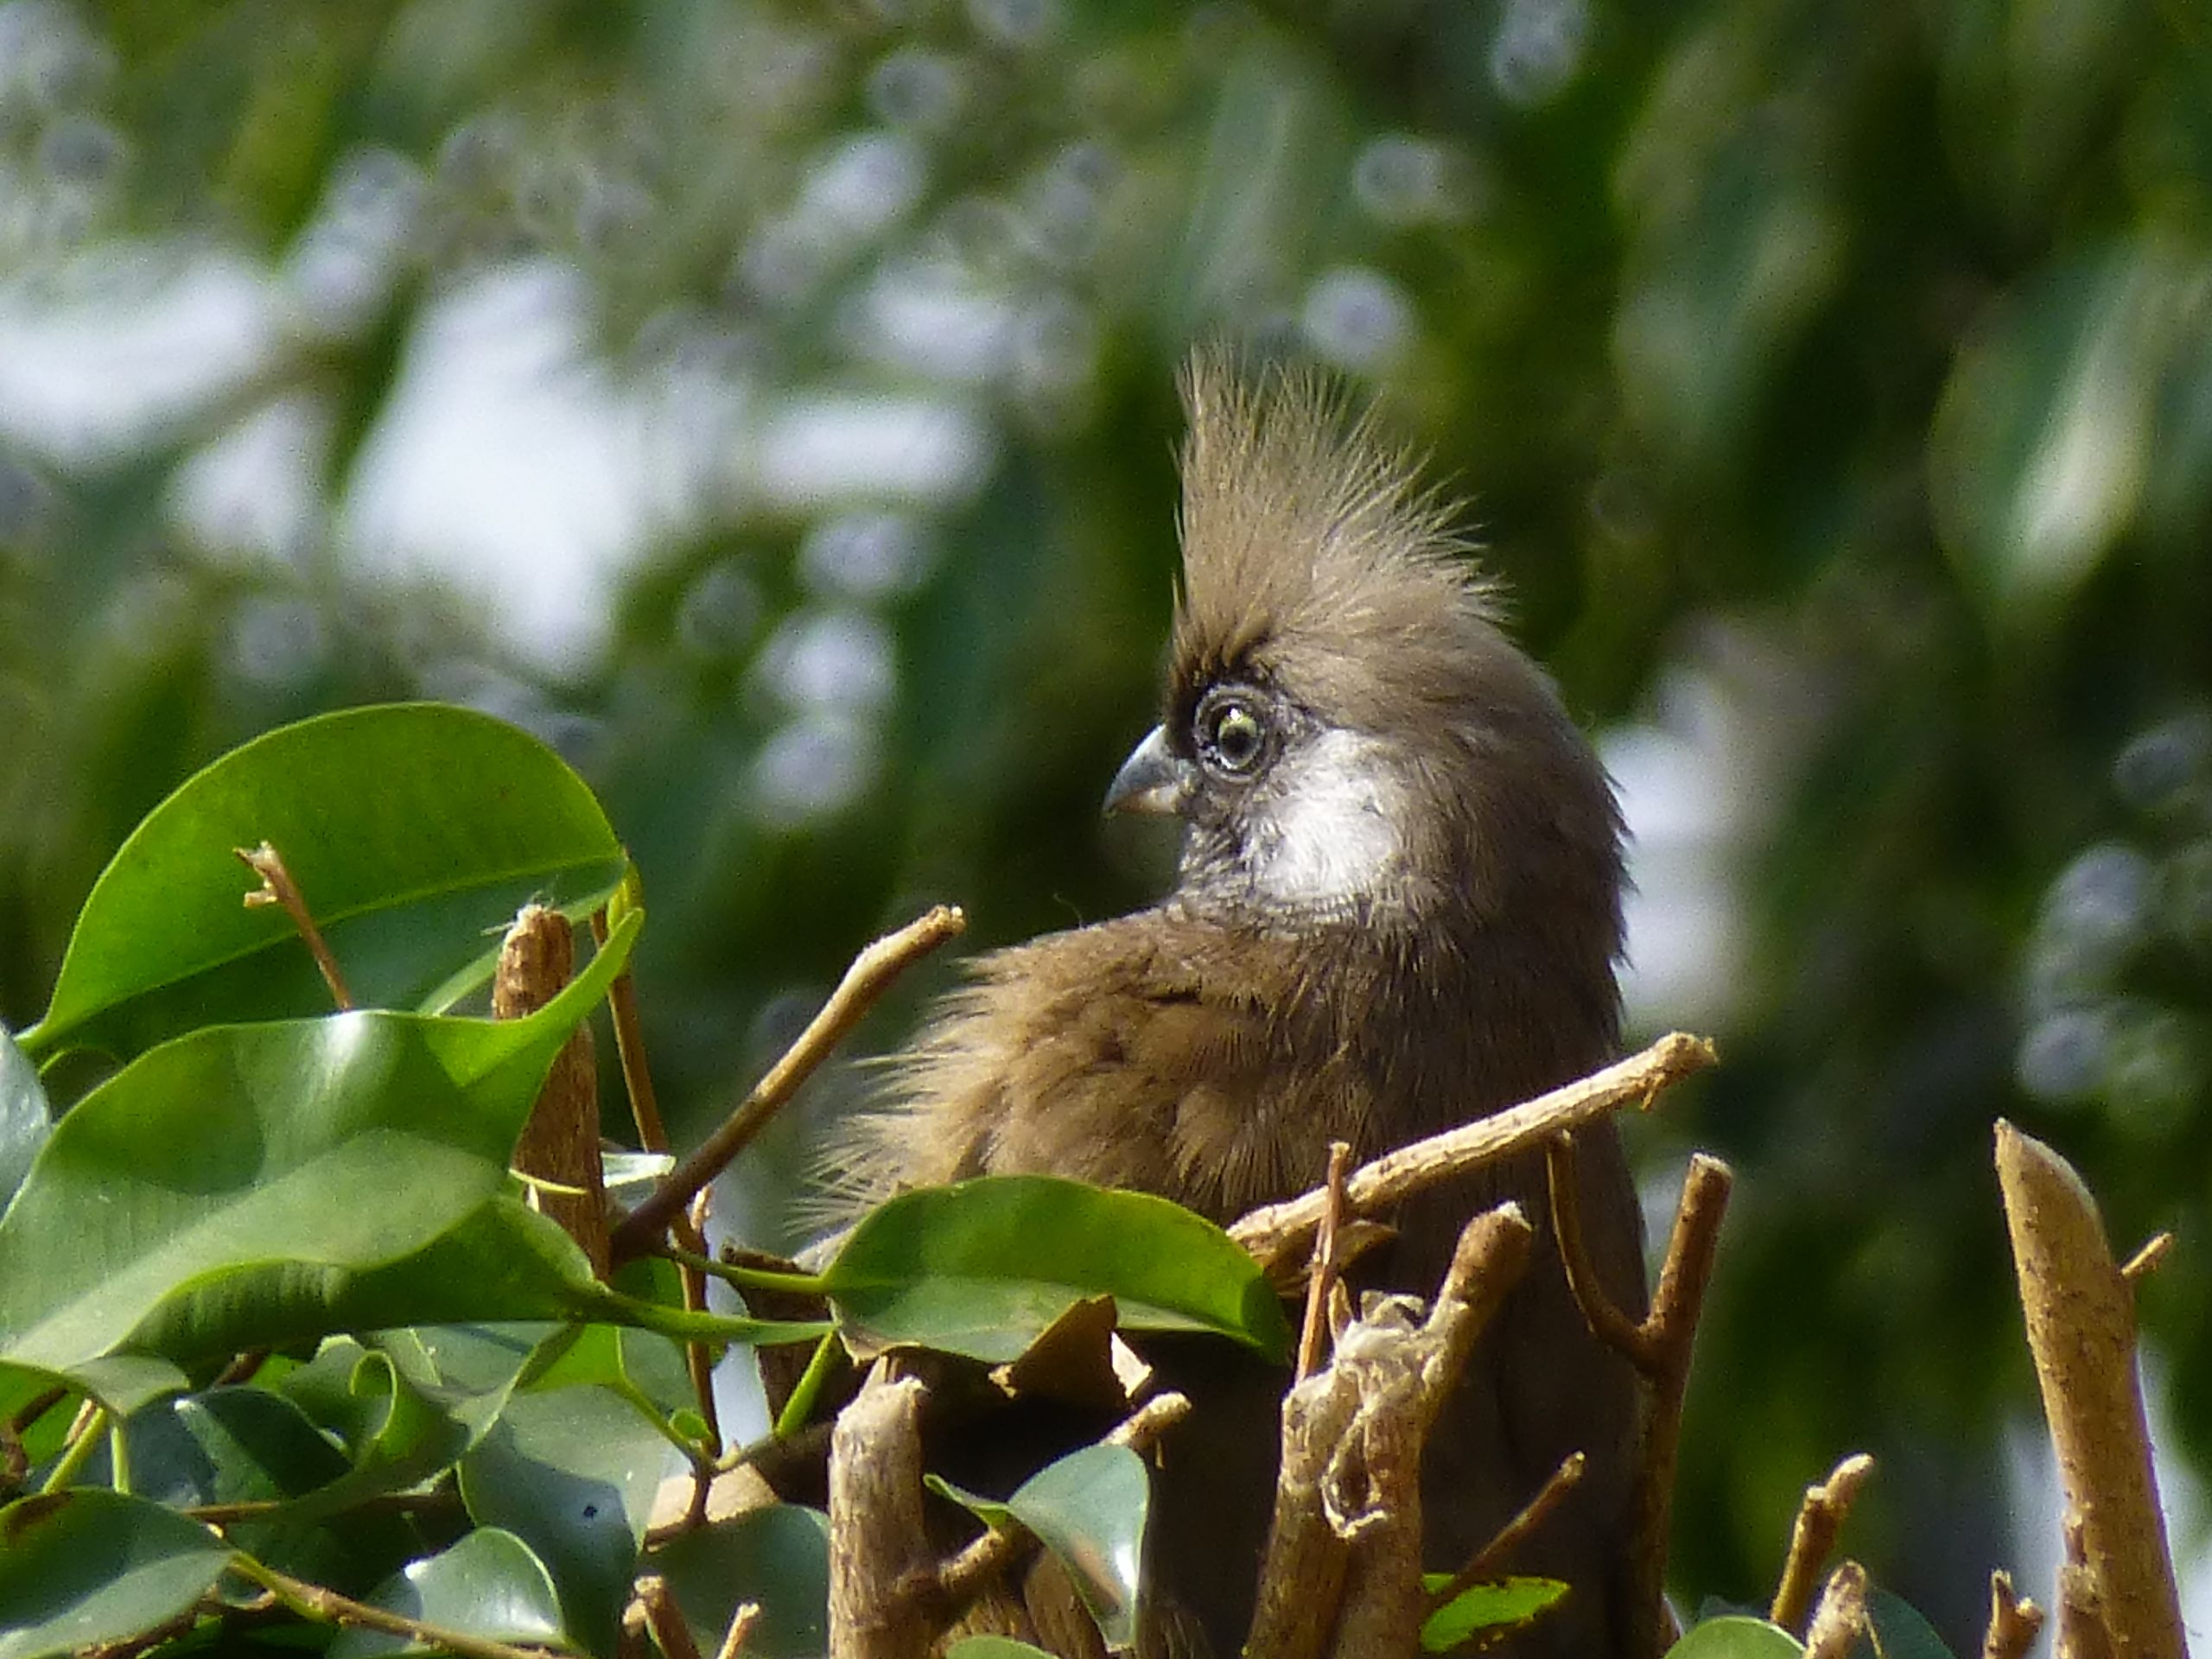 Goofy looking long-tailed birds nest in the yard.